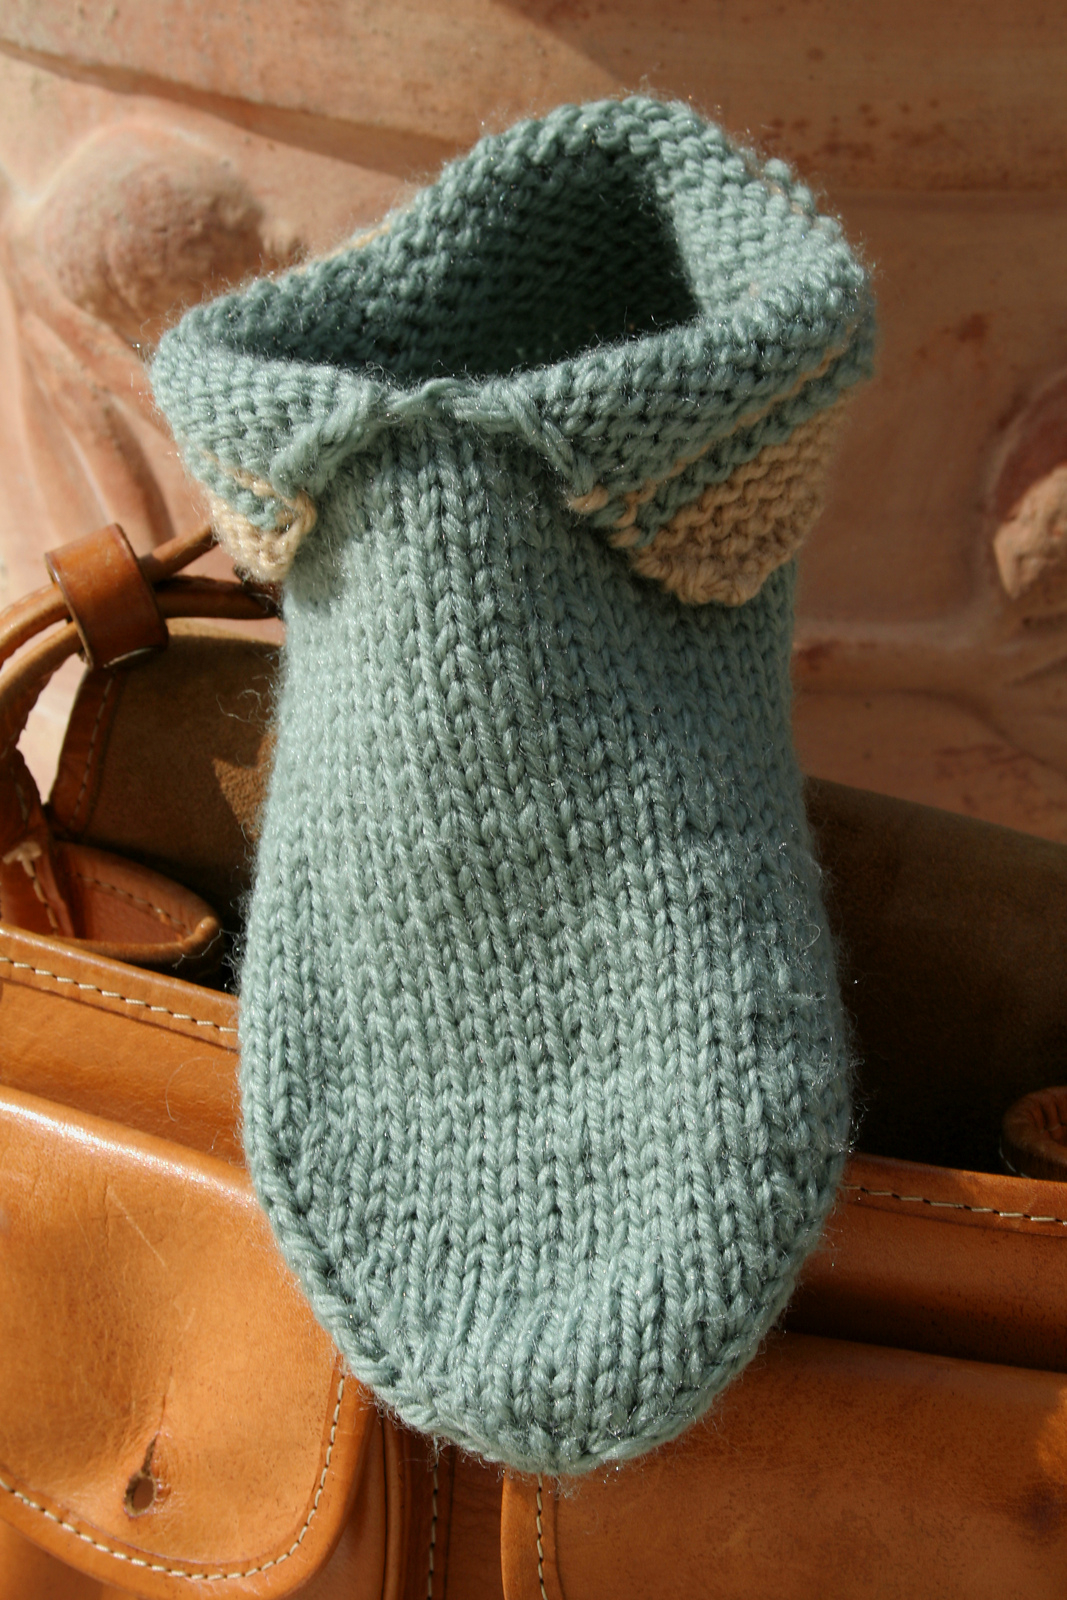 Free Patterns For Knitted Slippers 8 Knitting Patterns For Slipper Boots Cozy Slippers Crochet Boots